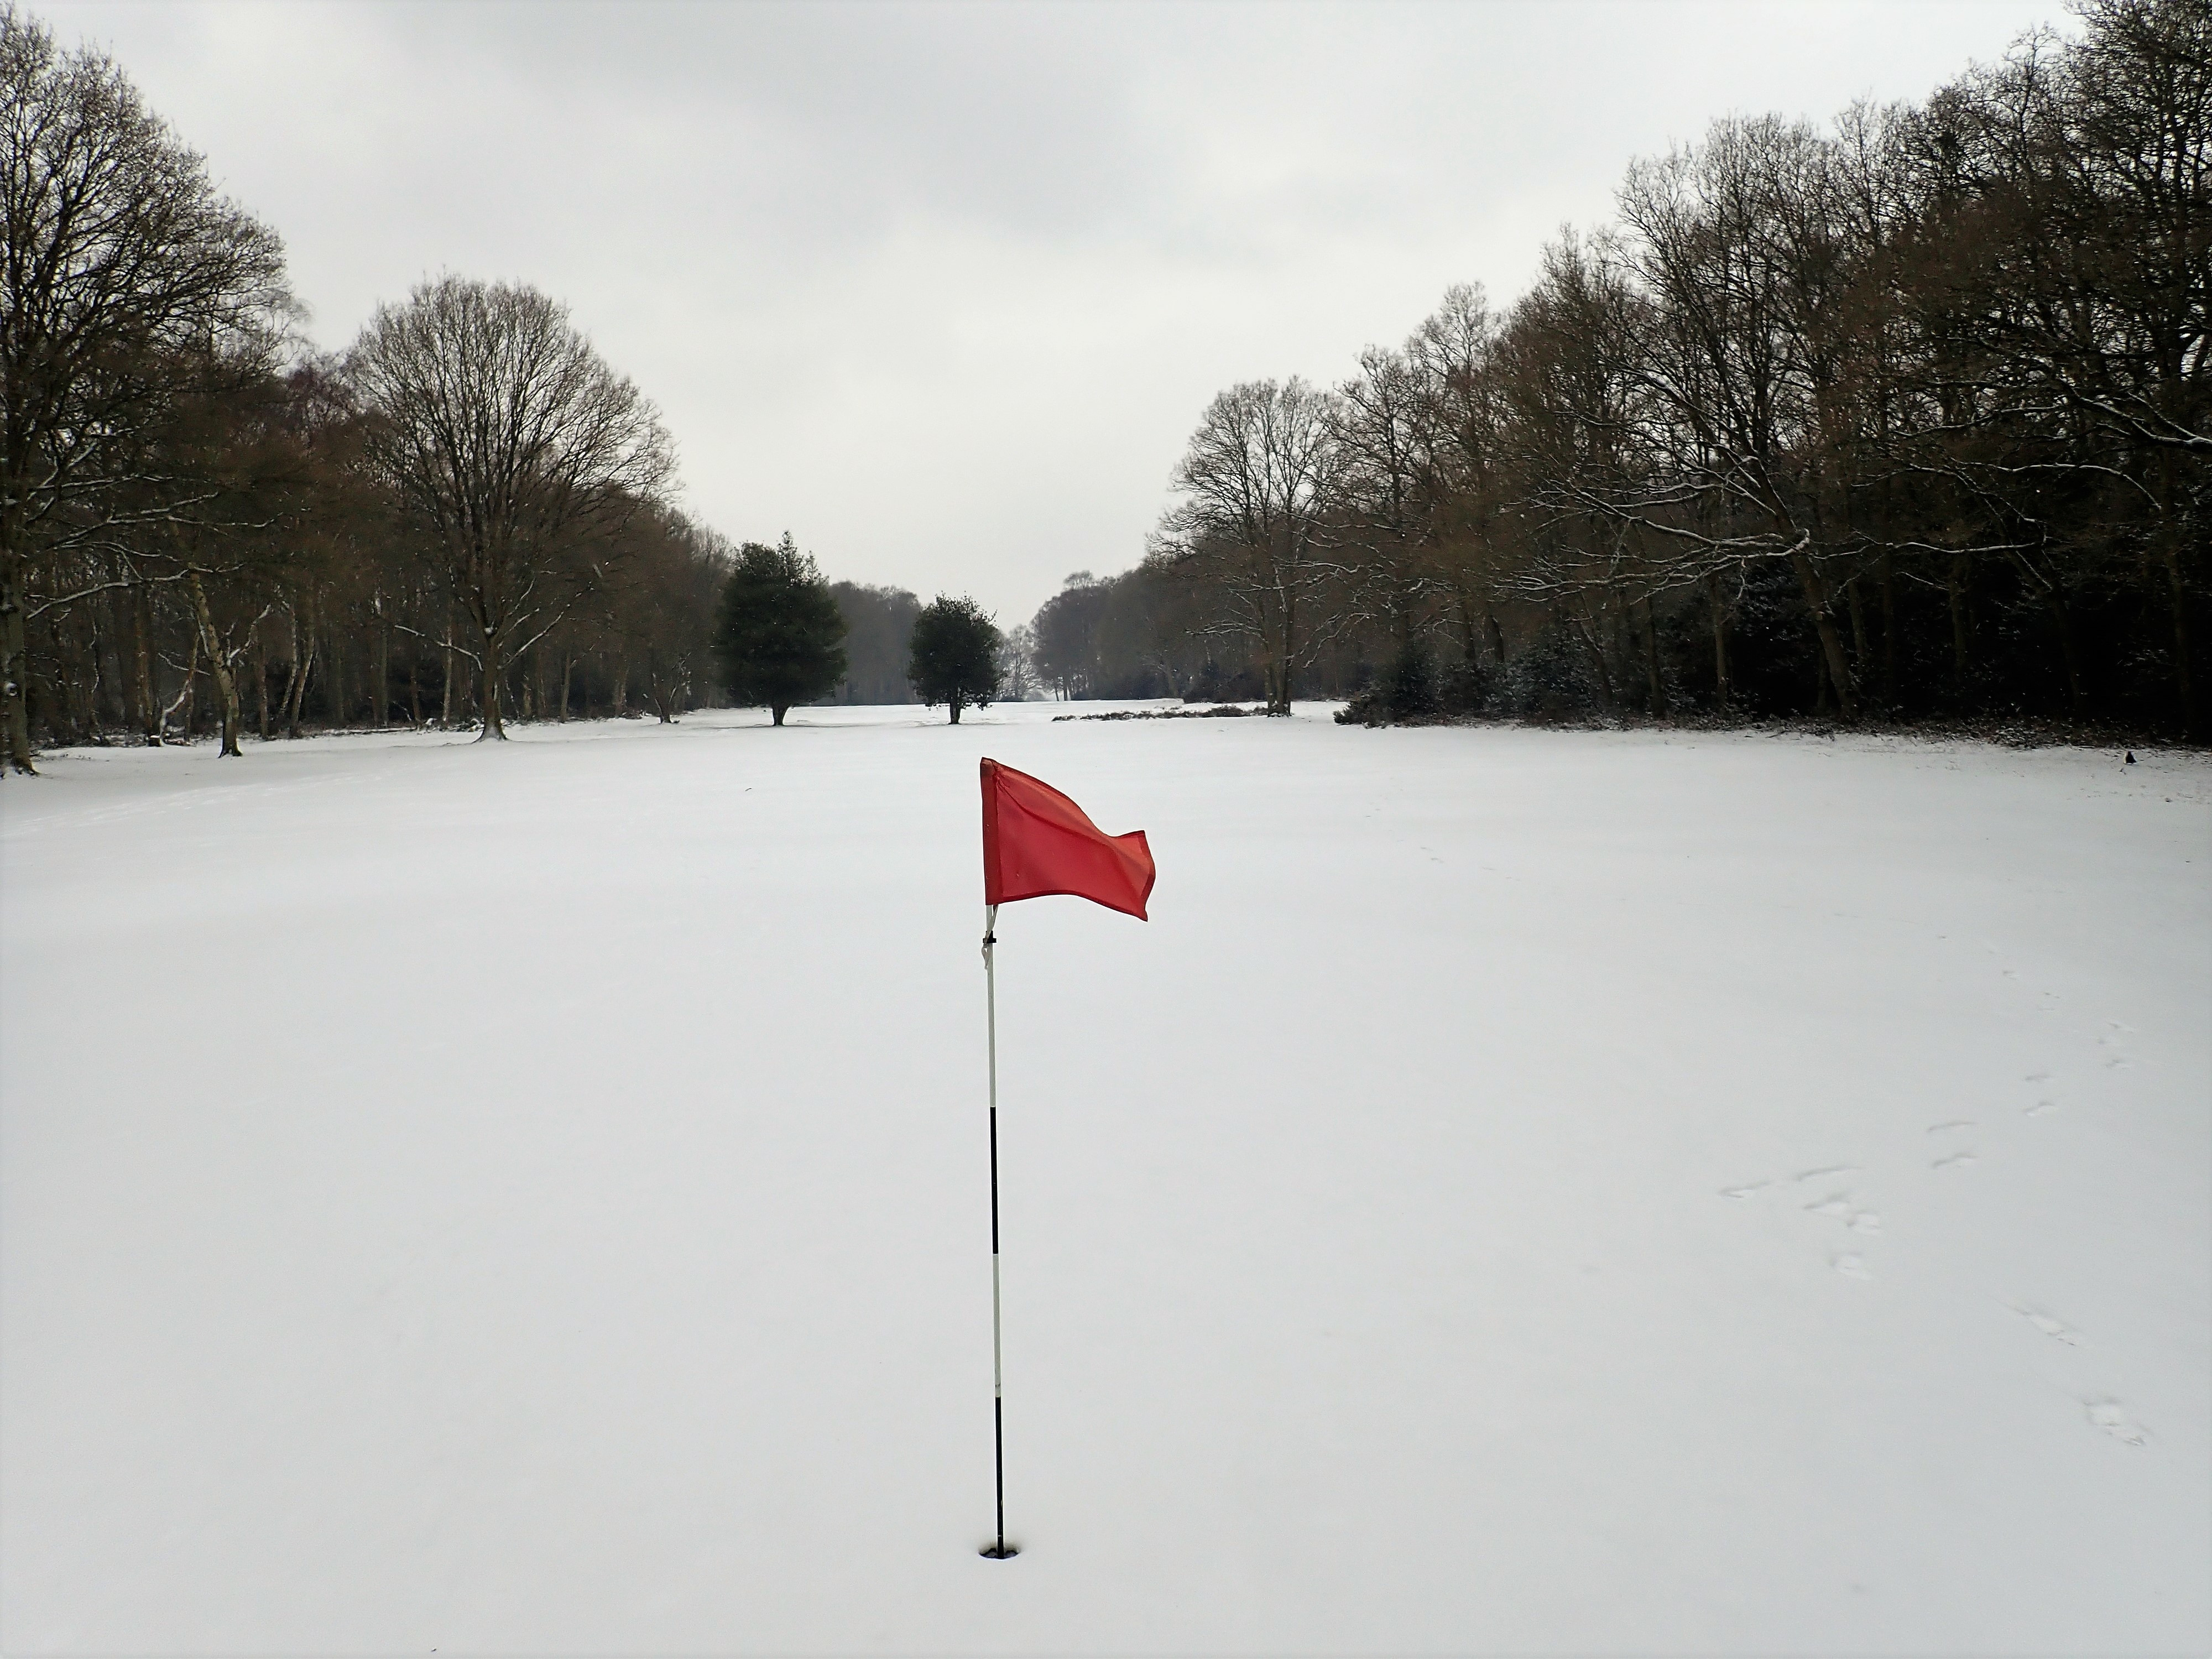 Golf Course in Snow